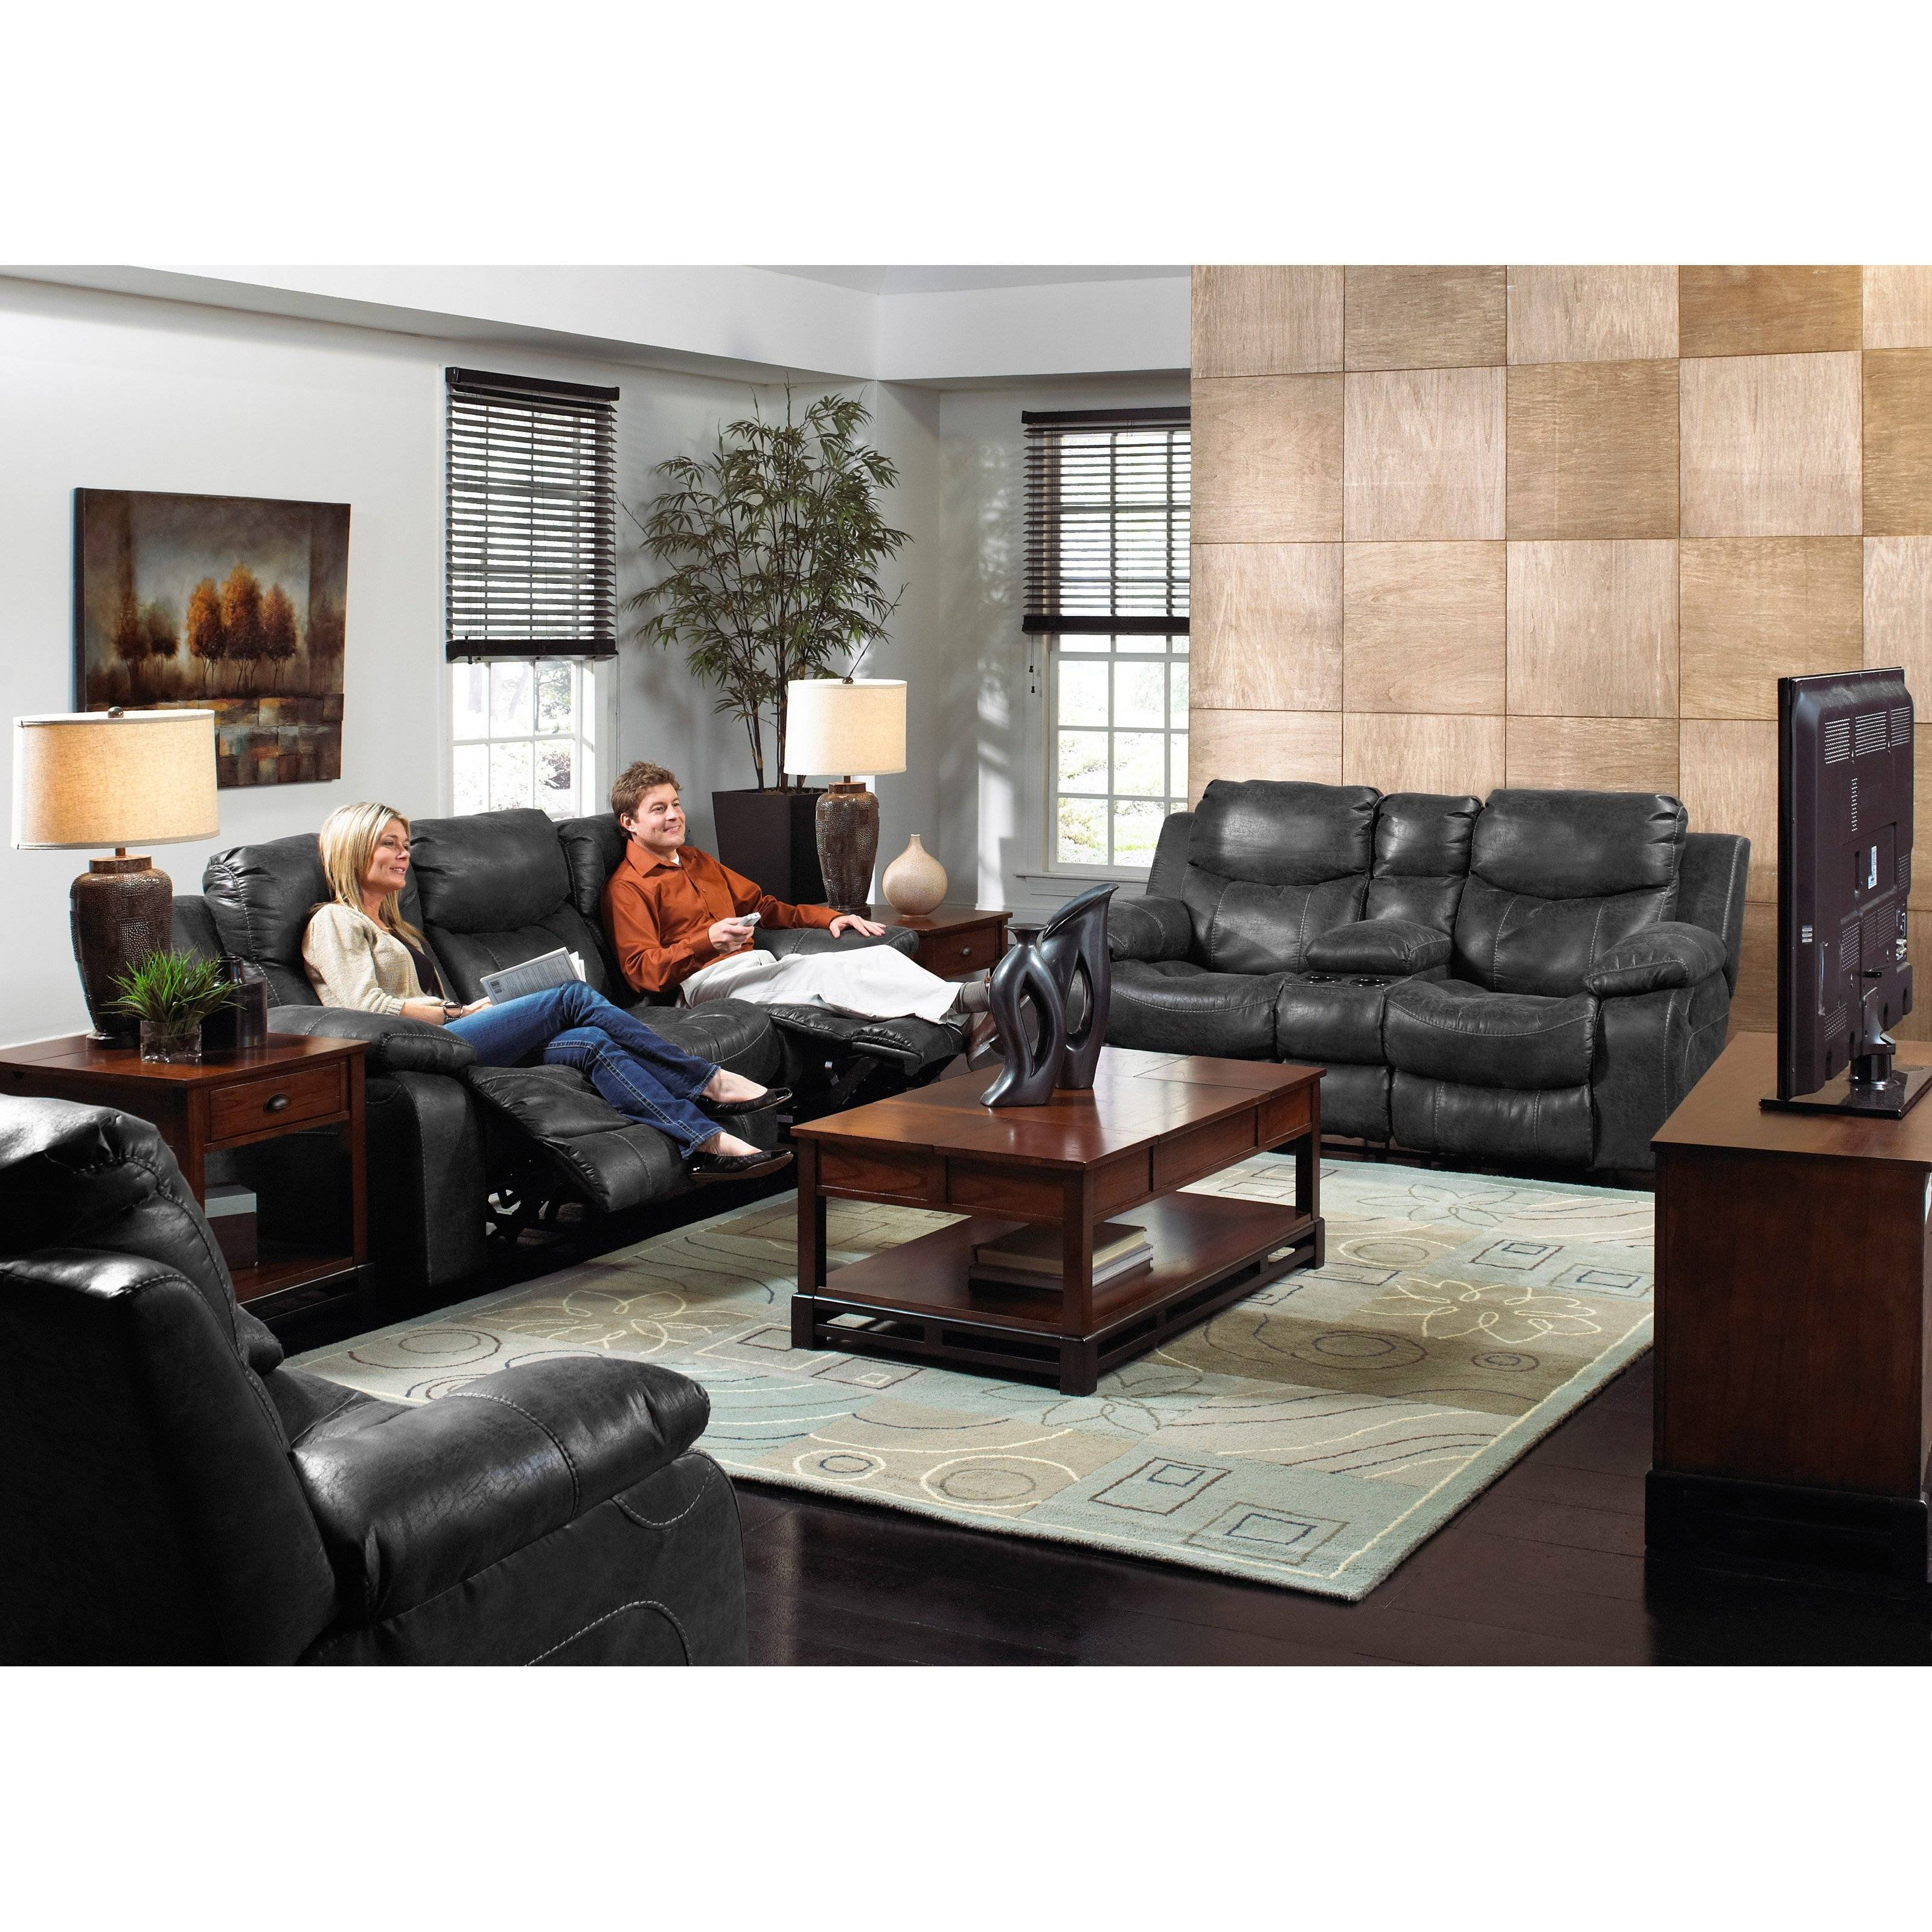 Catnapper Catalina Leather Reclining Sofa Set - Steel - Walmart in Catnapper Reclining Sofas (Image 5 of 15)